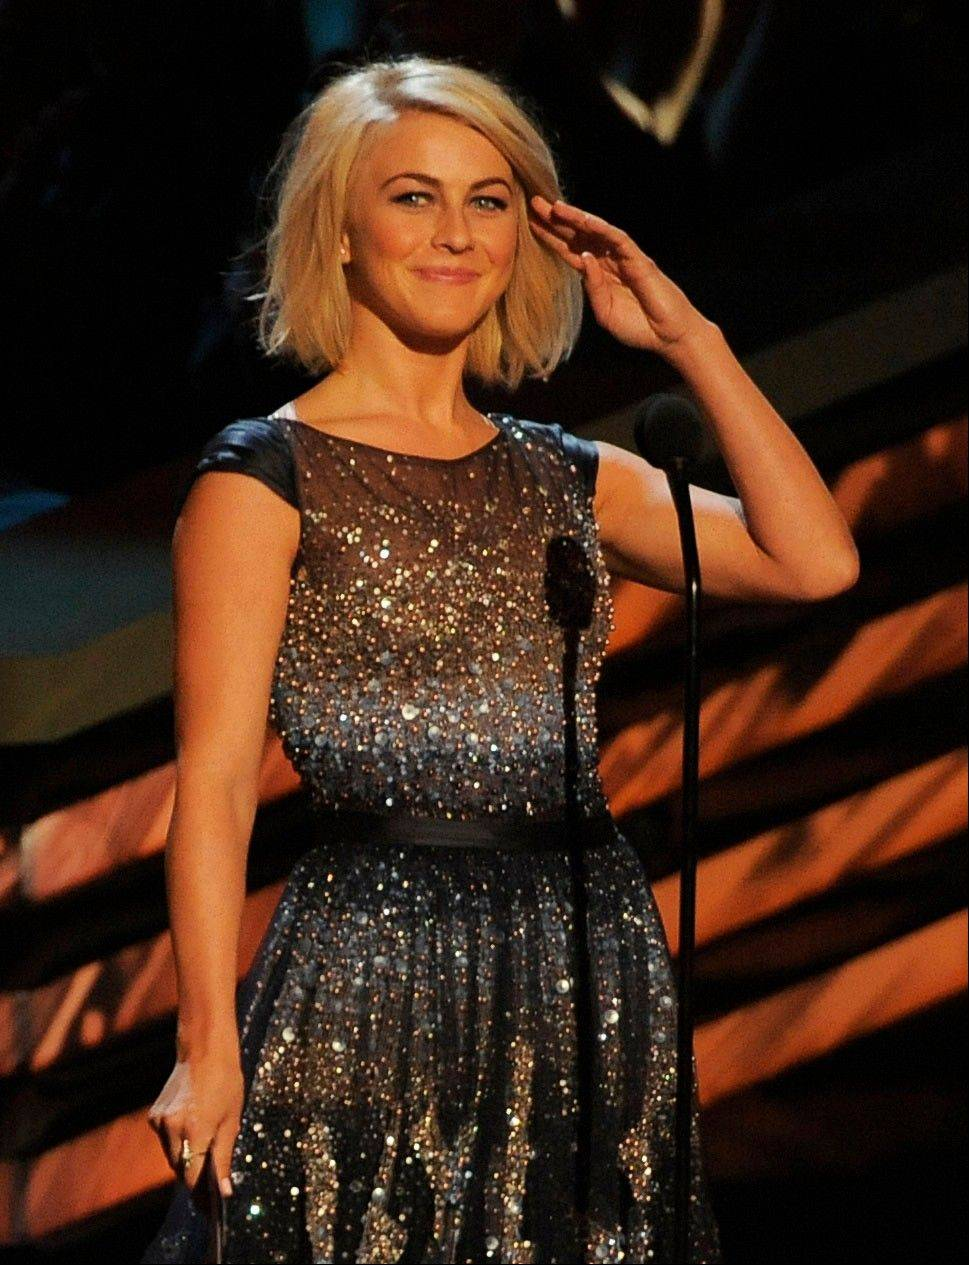 Julianne Hough presents the award for favorite comedic movie actress at the People's Choice Awards at the Nokia Theatre on Wednesday Jan. 9, 2013, in Los Angeles.